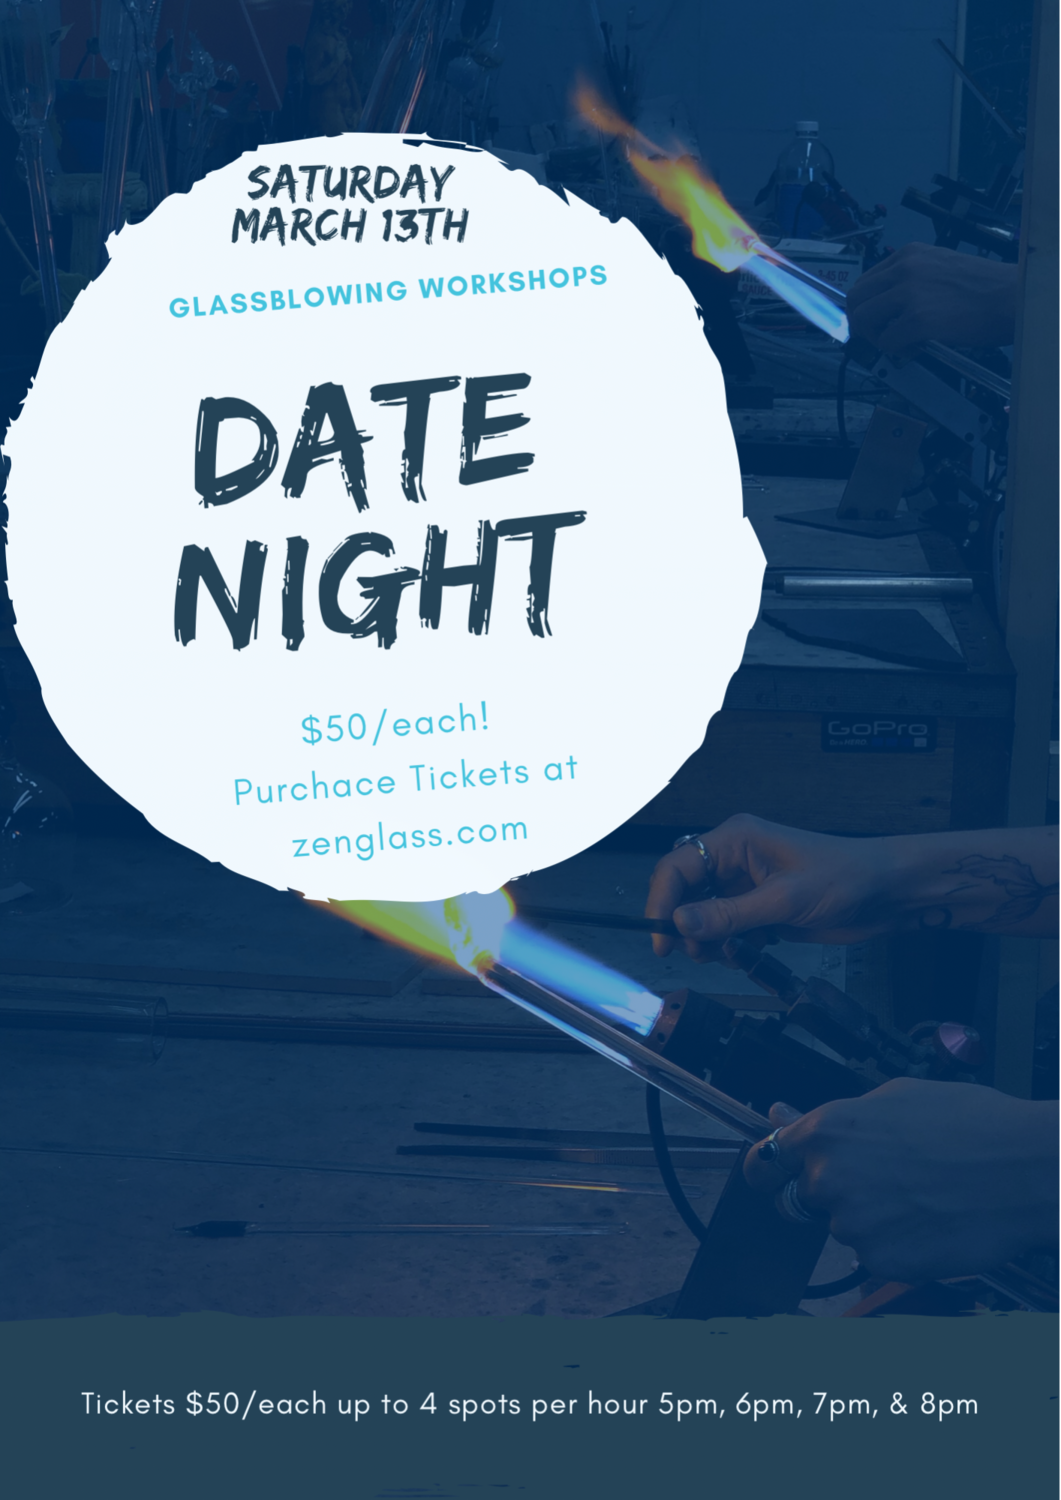 Date Night Saturday March 13th 6pm